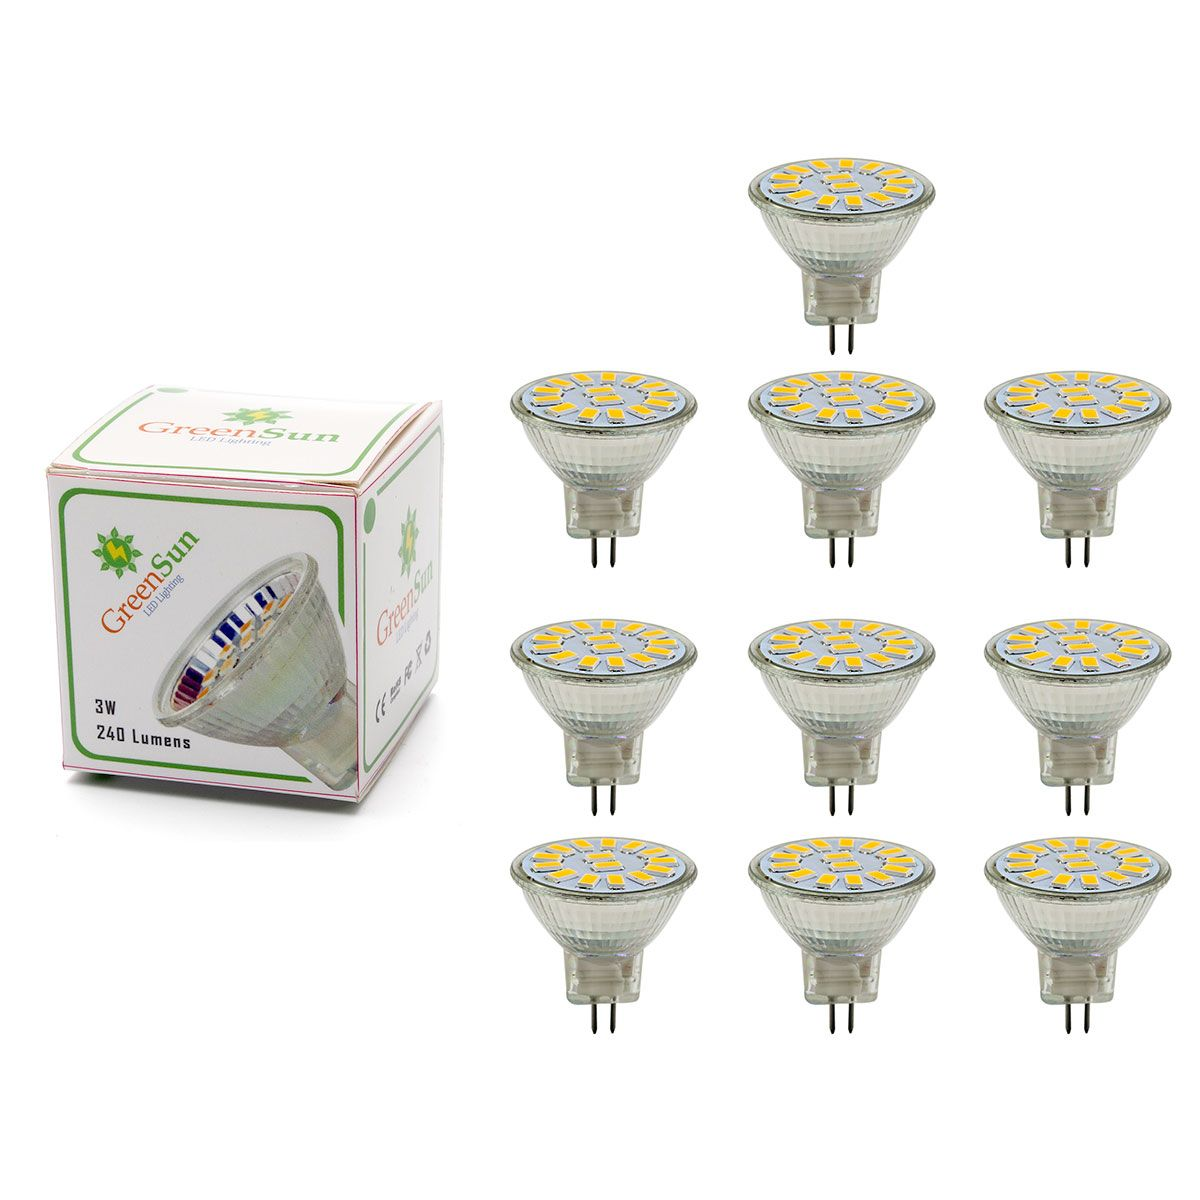 1set 10pcs Mr11 Led Bulb Gu4 Replace Lamp 5733 Smd Led Spotlight Energy Saving Spot Light Bulb Cool Warm White Ac Dc 12 30v Led Spotlight Led Bulb Lights